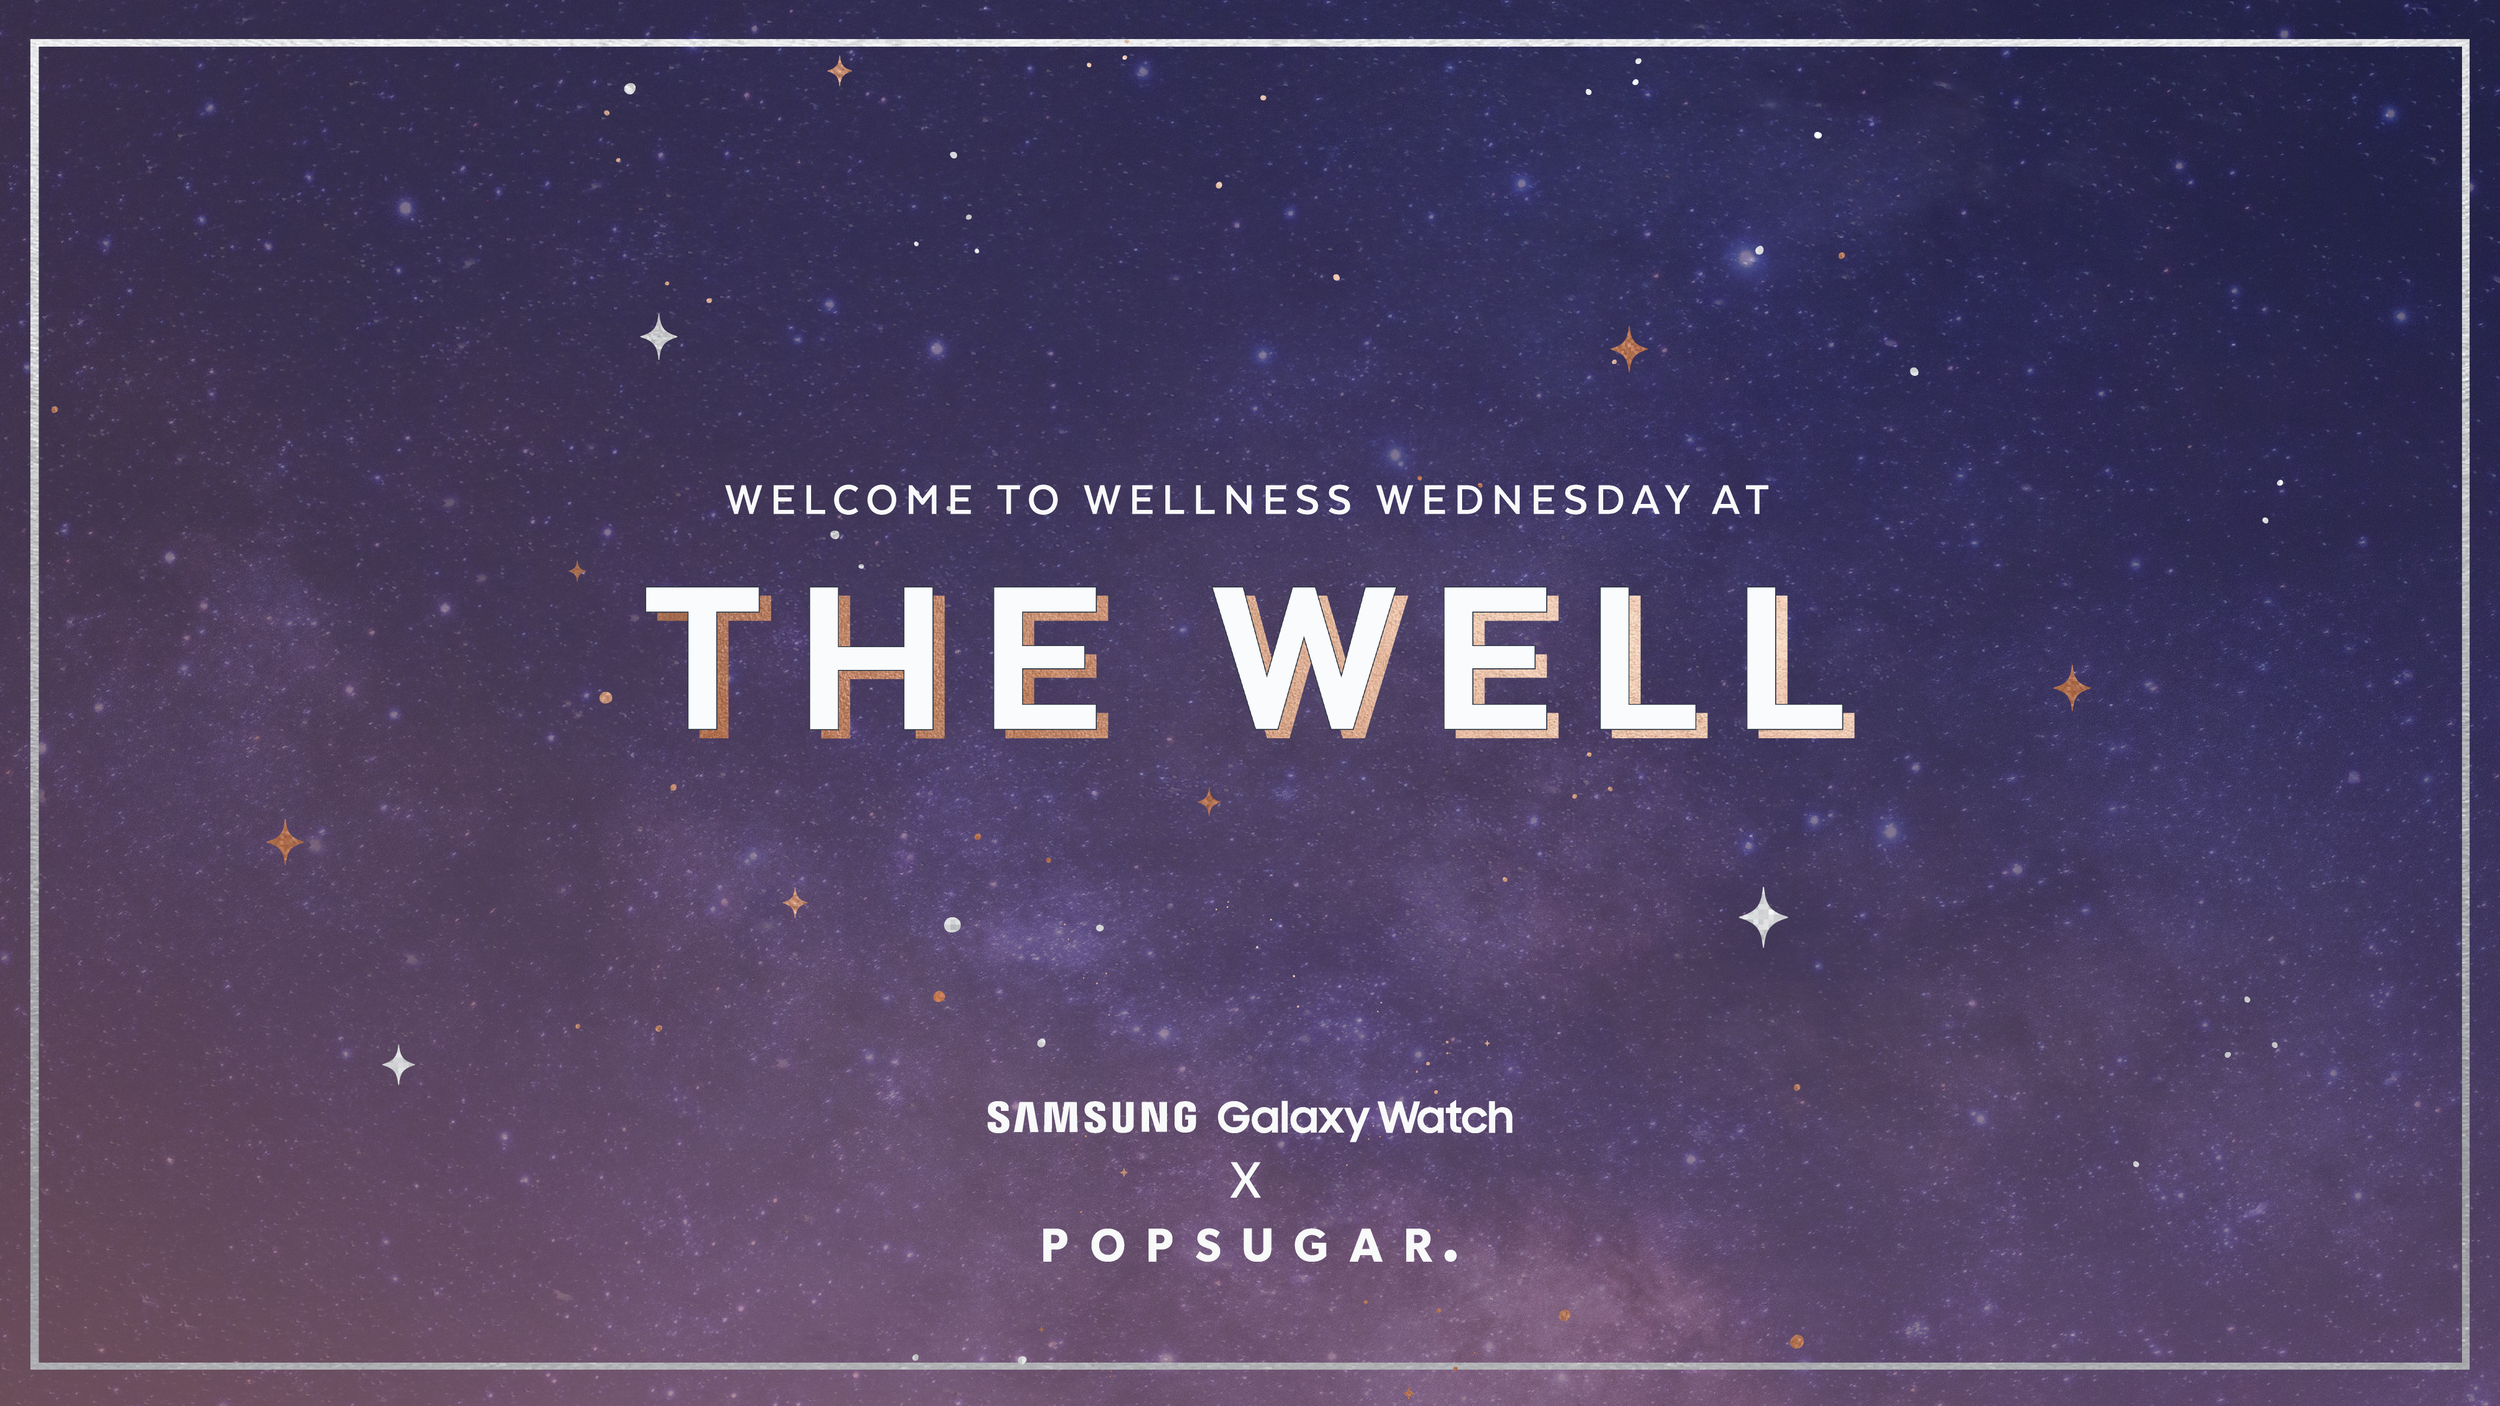 PS18_Samsung_TheWell_CES_Signage_Welcome-Sign_19-6.png